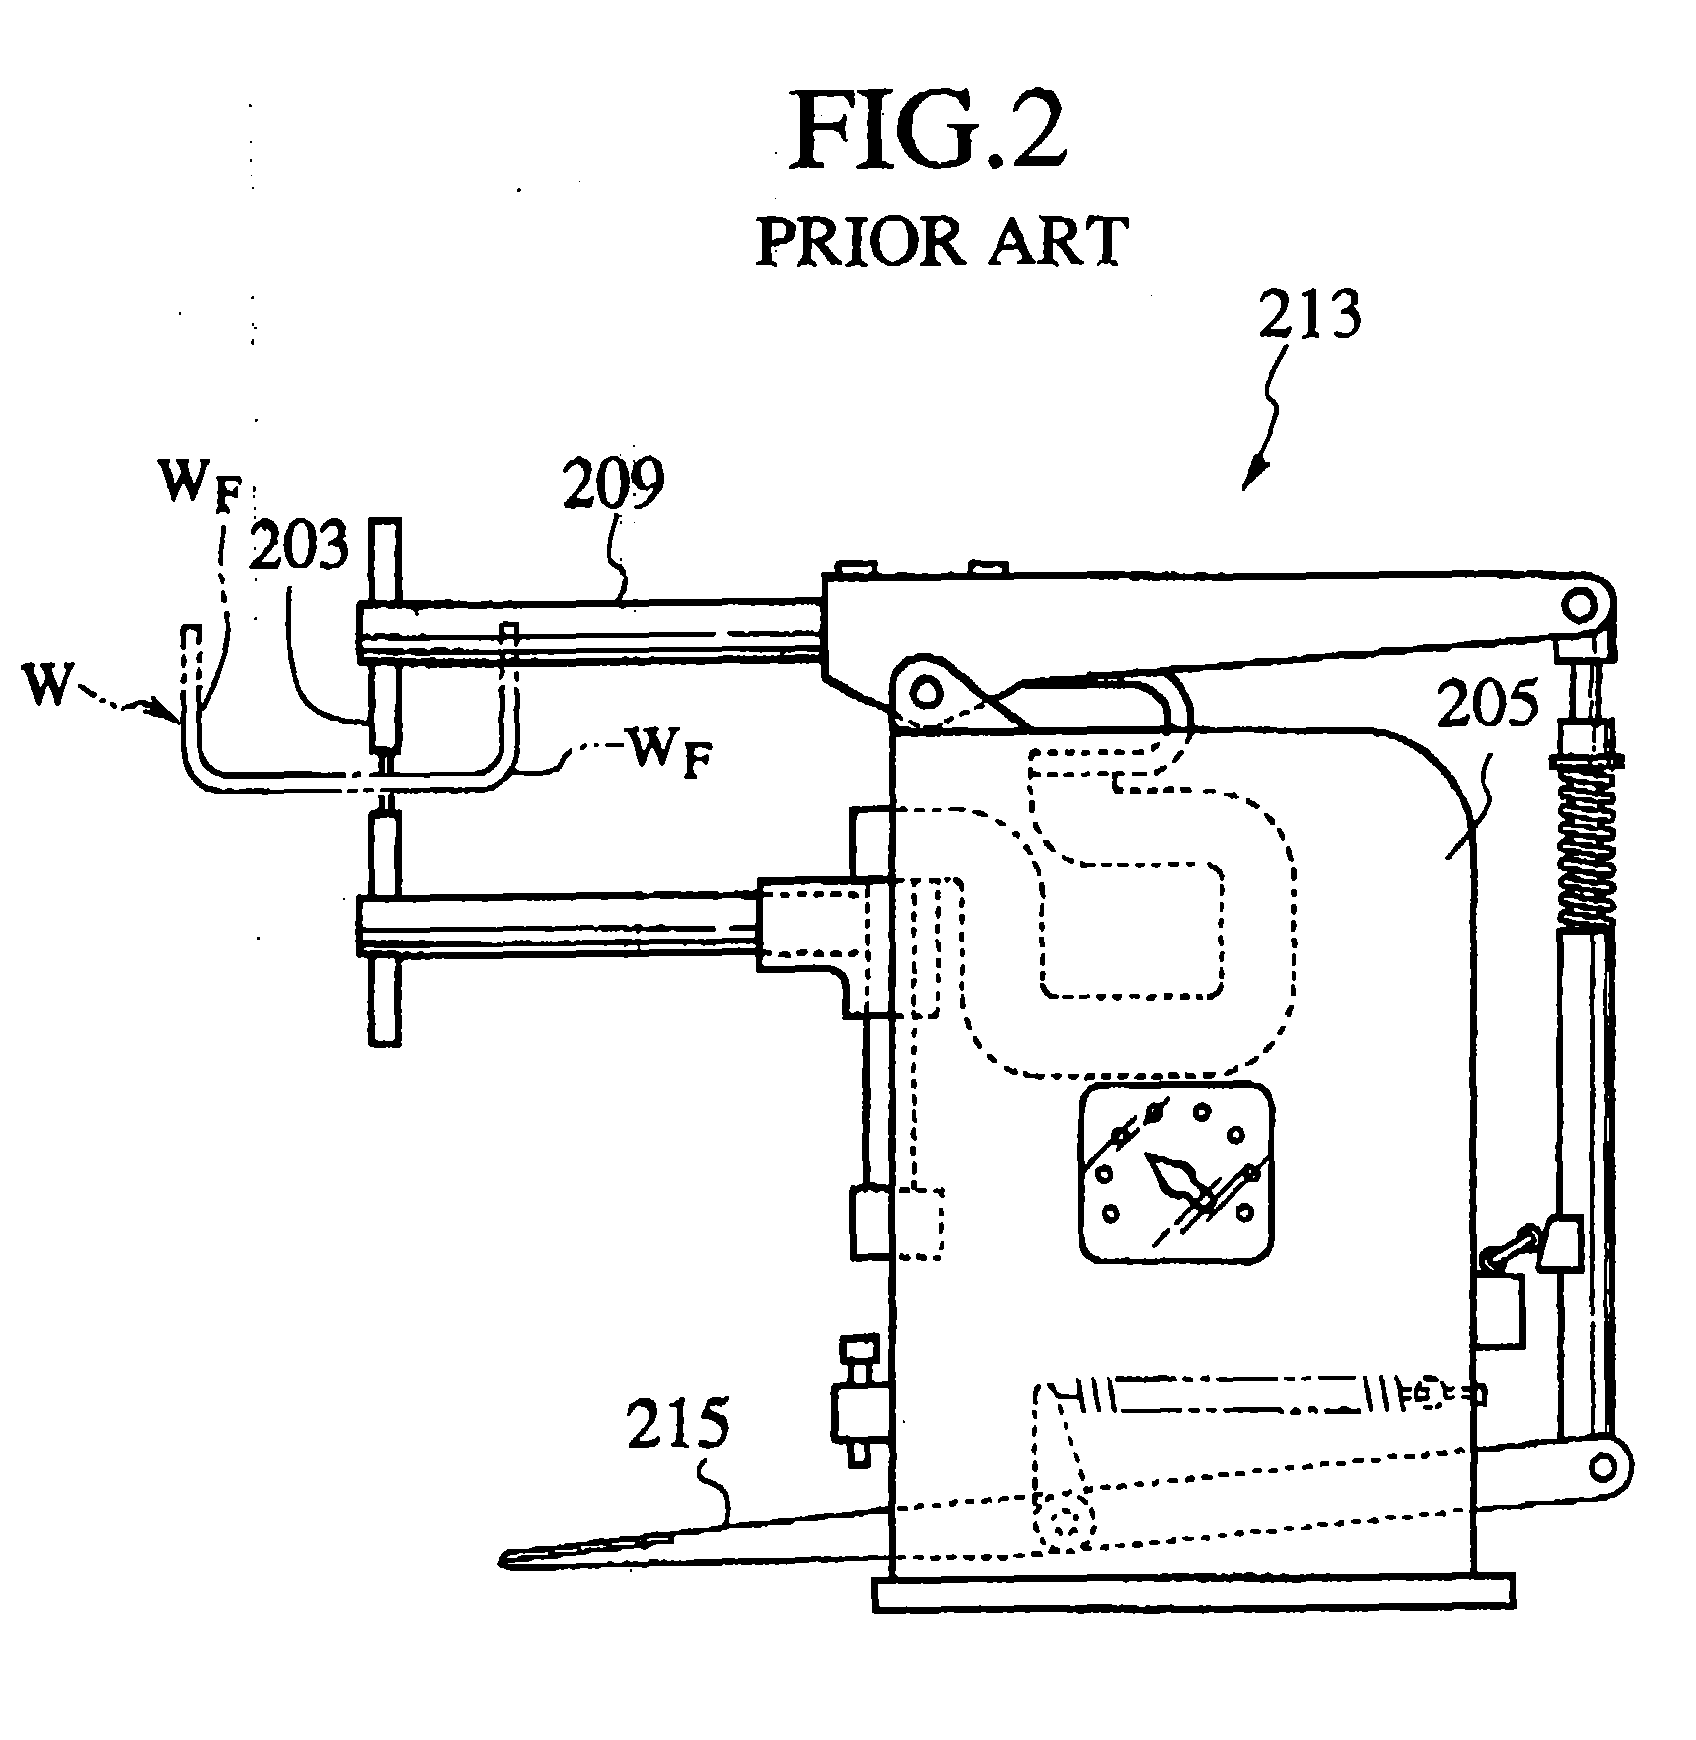 spot welding wiring diagram spot welding machine diagram patent ep0819496a2 - spot welding machine - google patents